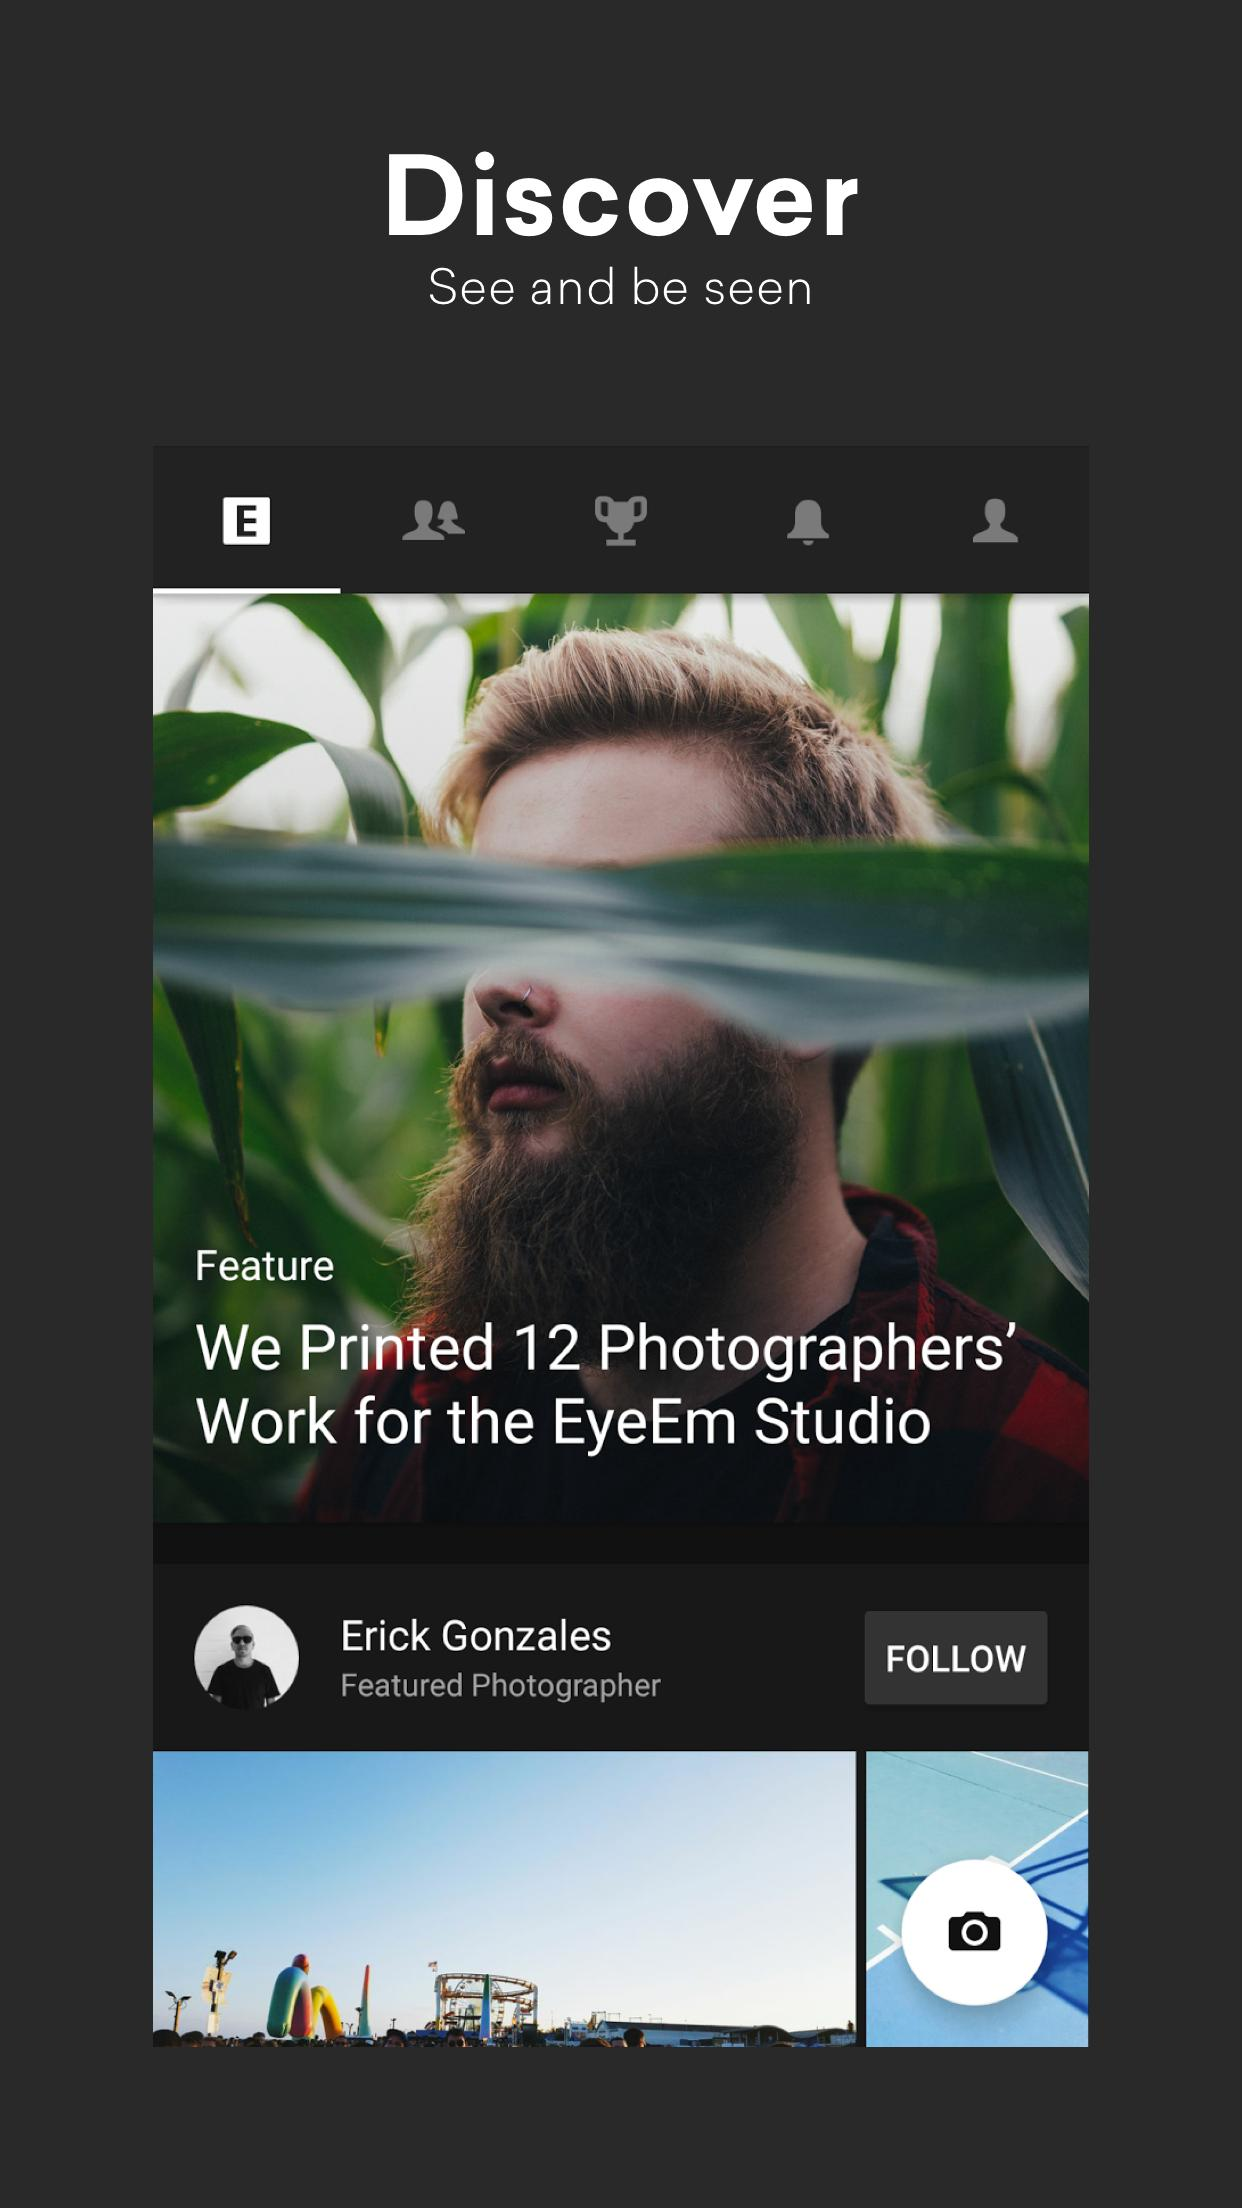 EyeEm Free Photo App For Sharing & Selling Images 8.1 Screenshot 1